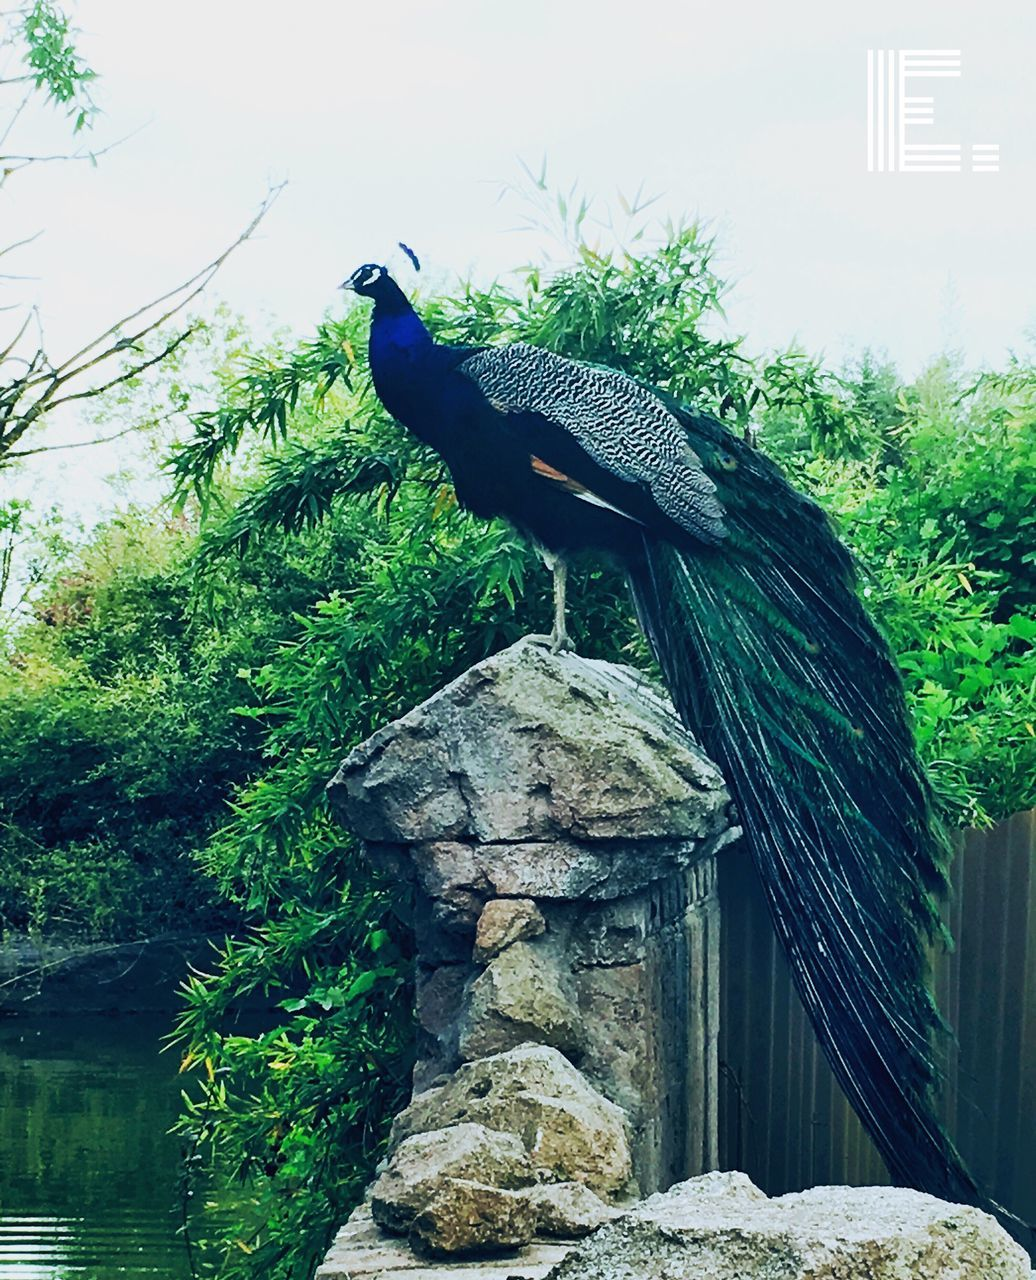 one animal, bird, animal themes, animals in the wild, peacock, nature, no people, animal wildlife, green color, outdoors, tree, day, plant, beauty in nature, perching, peacock feather, close-up, sky